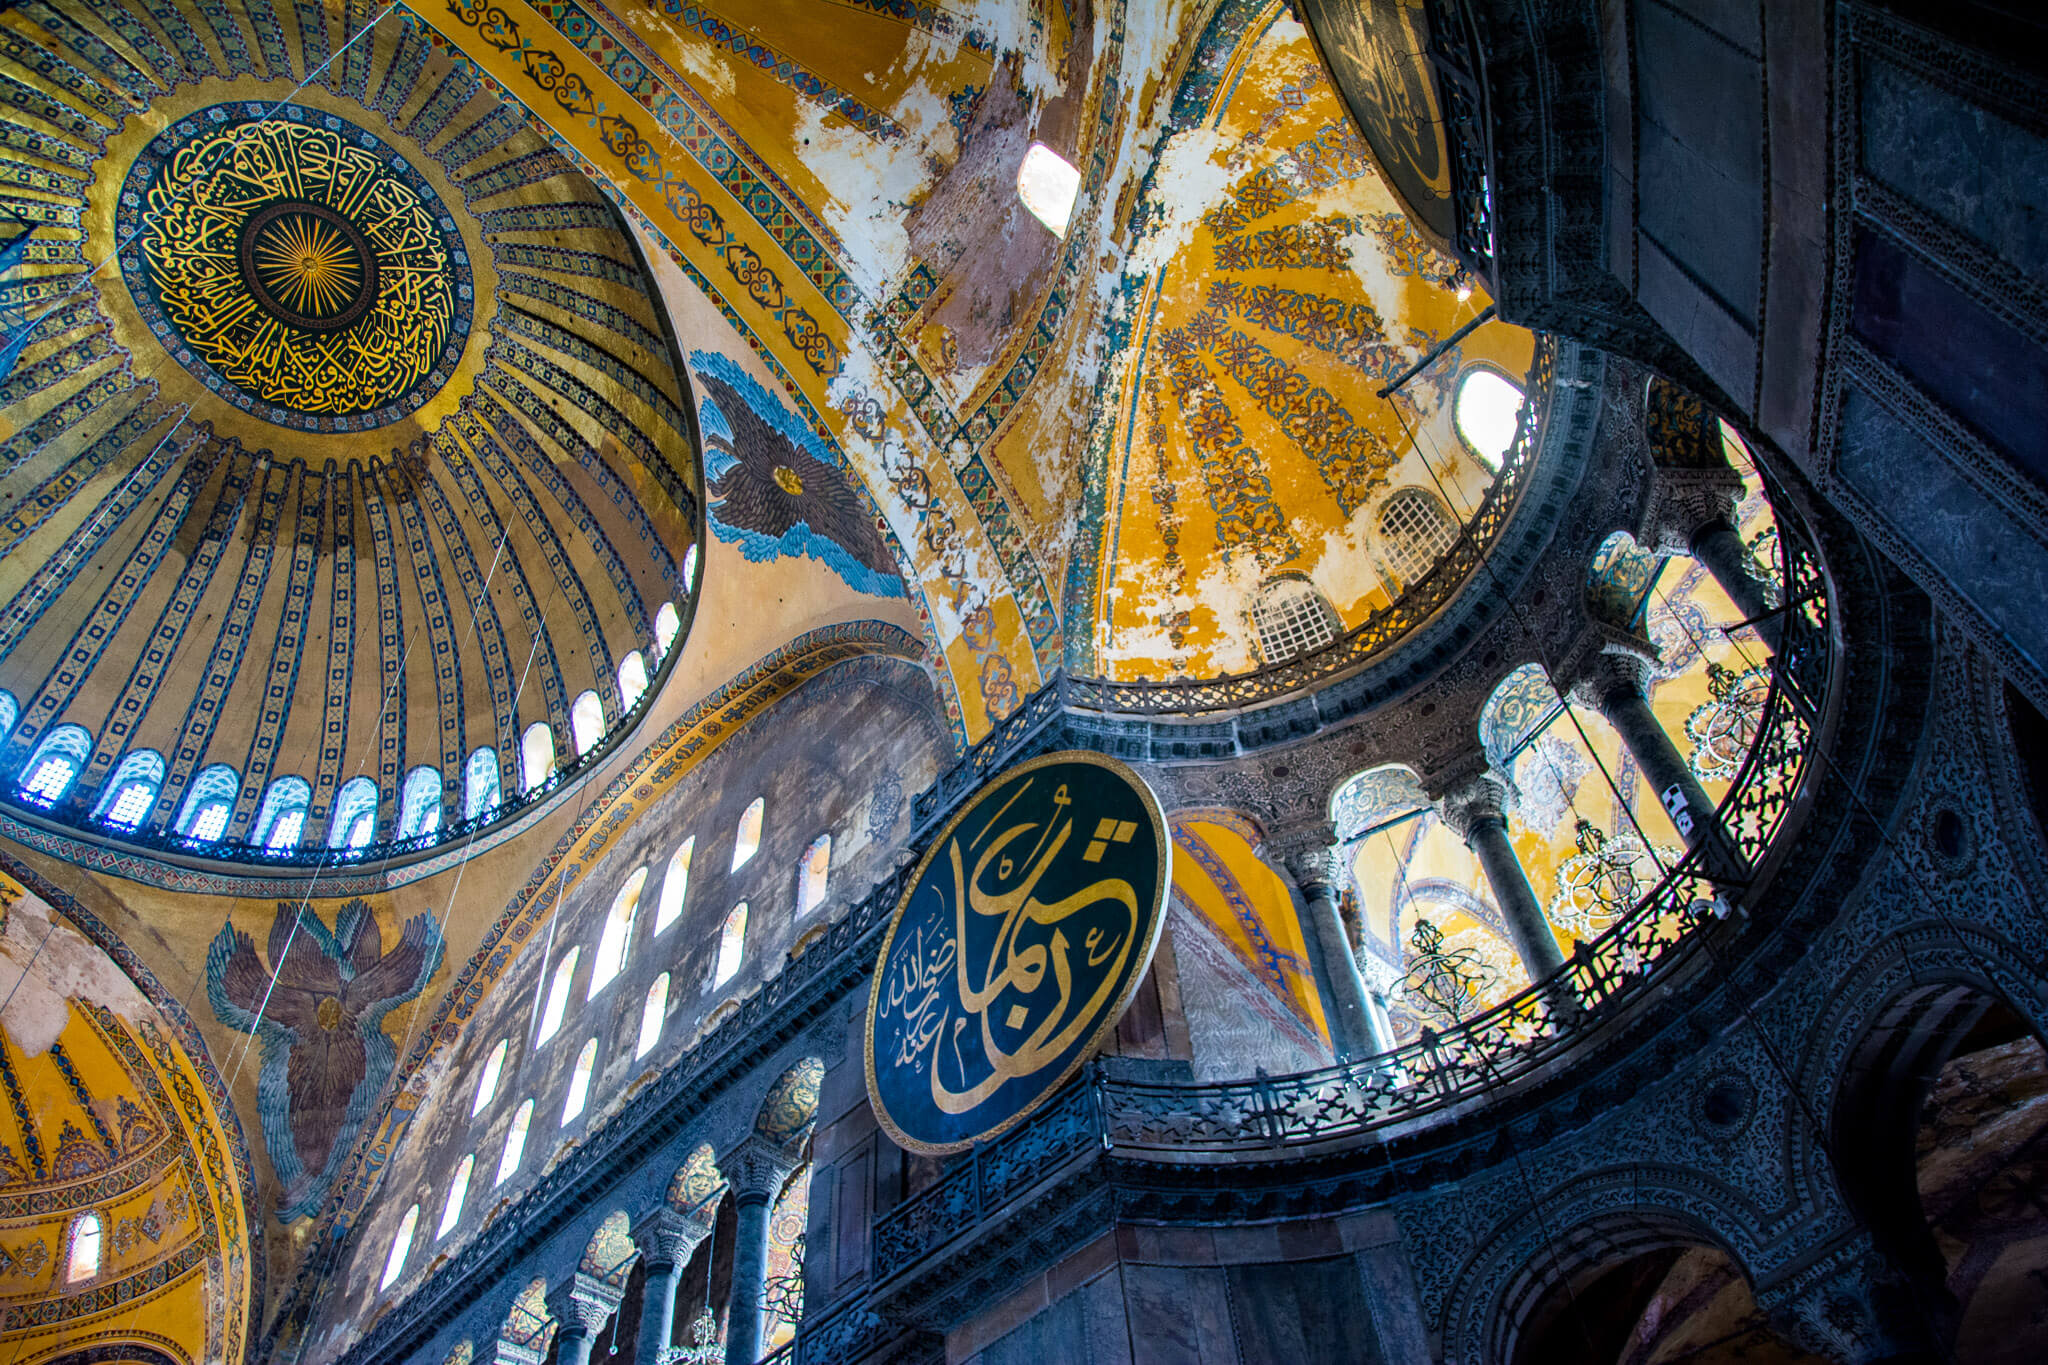 Inside the Hagia Sophia of Turkey